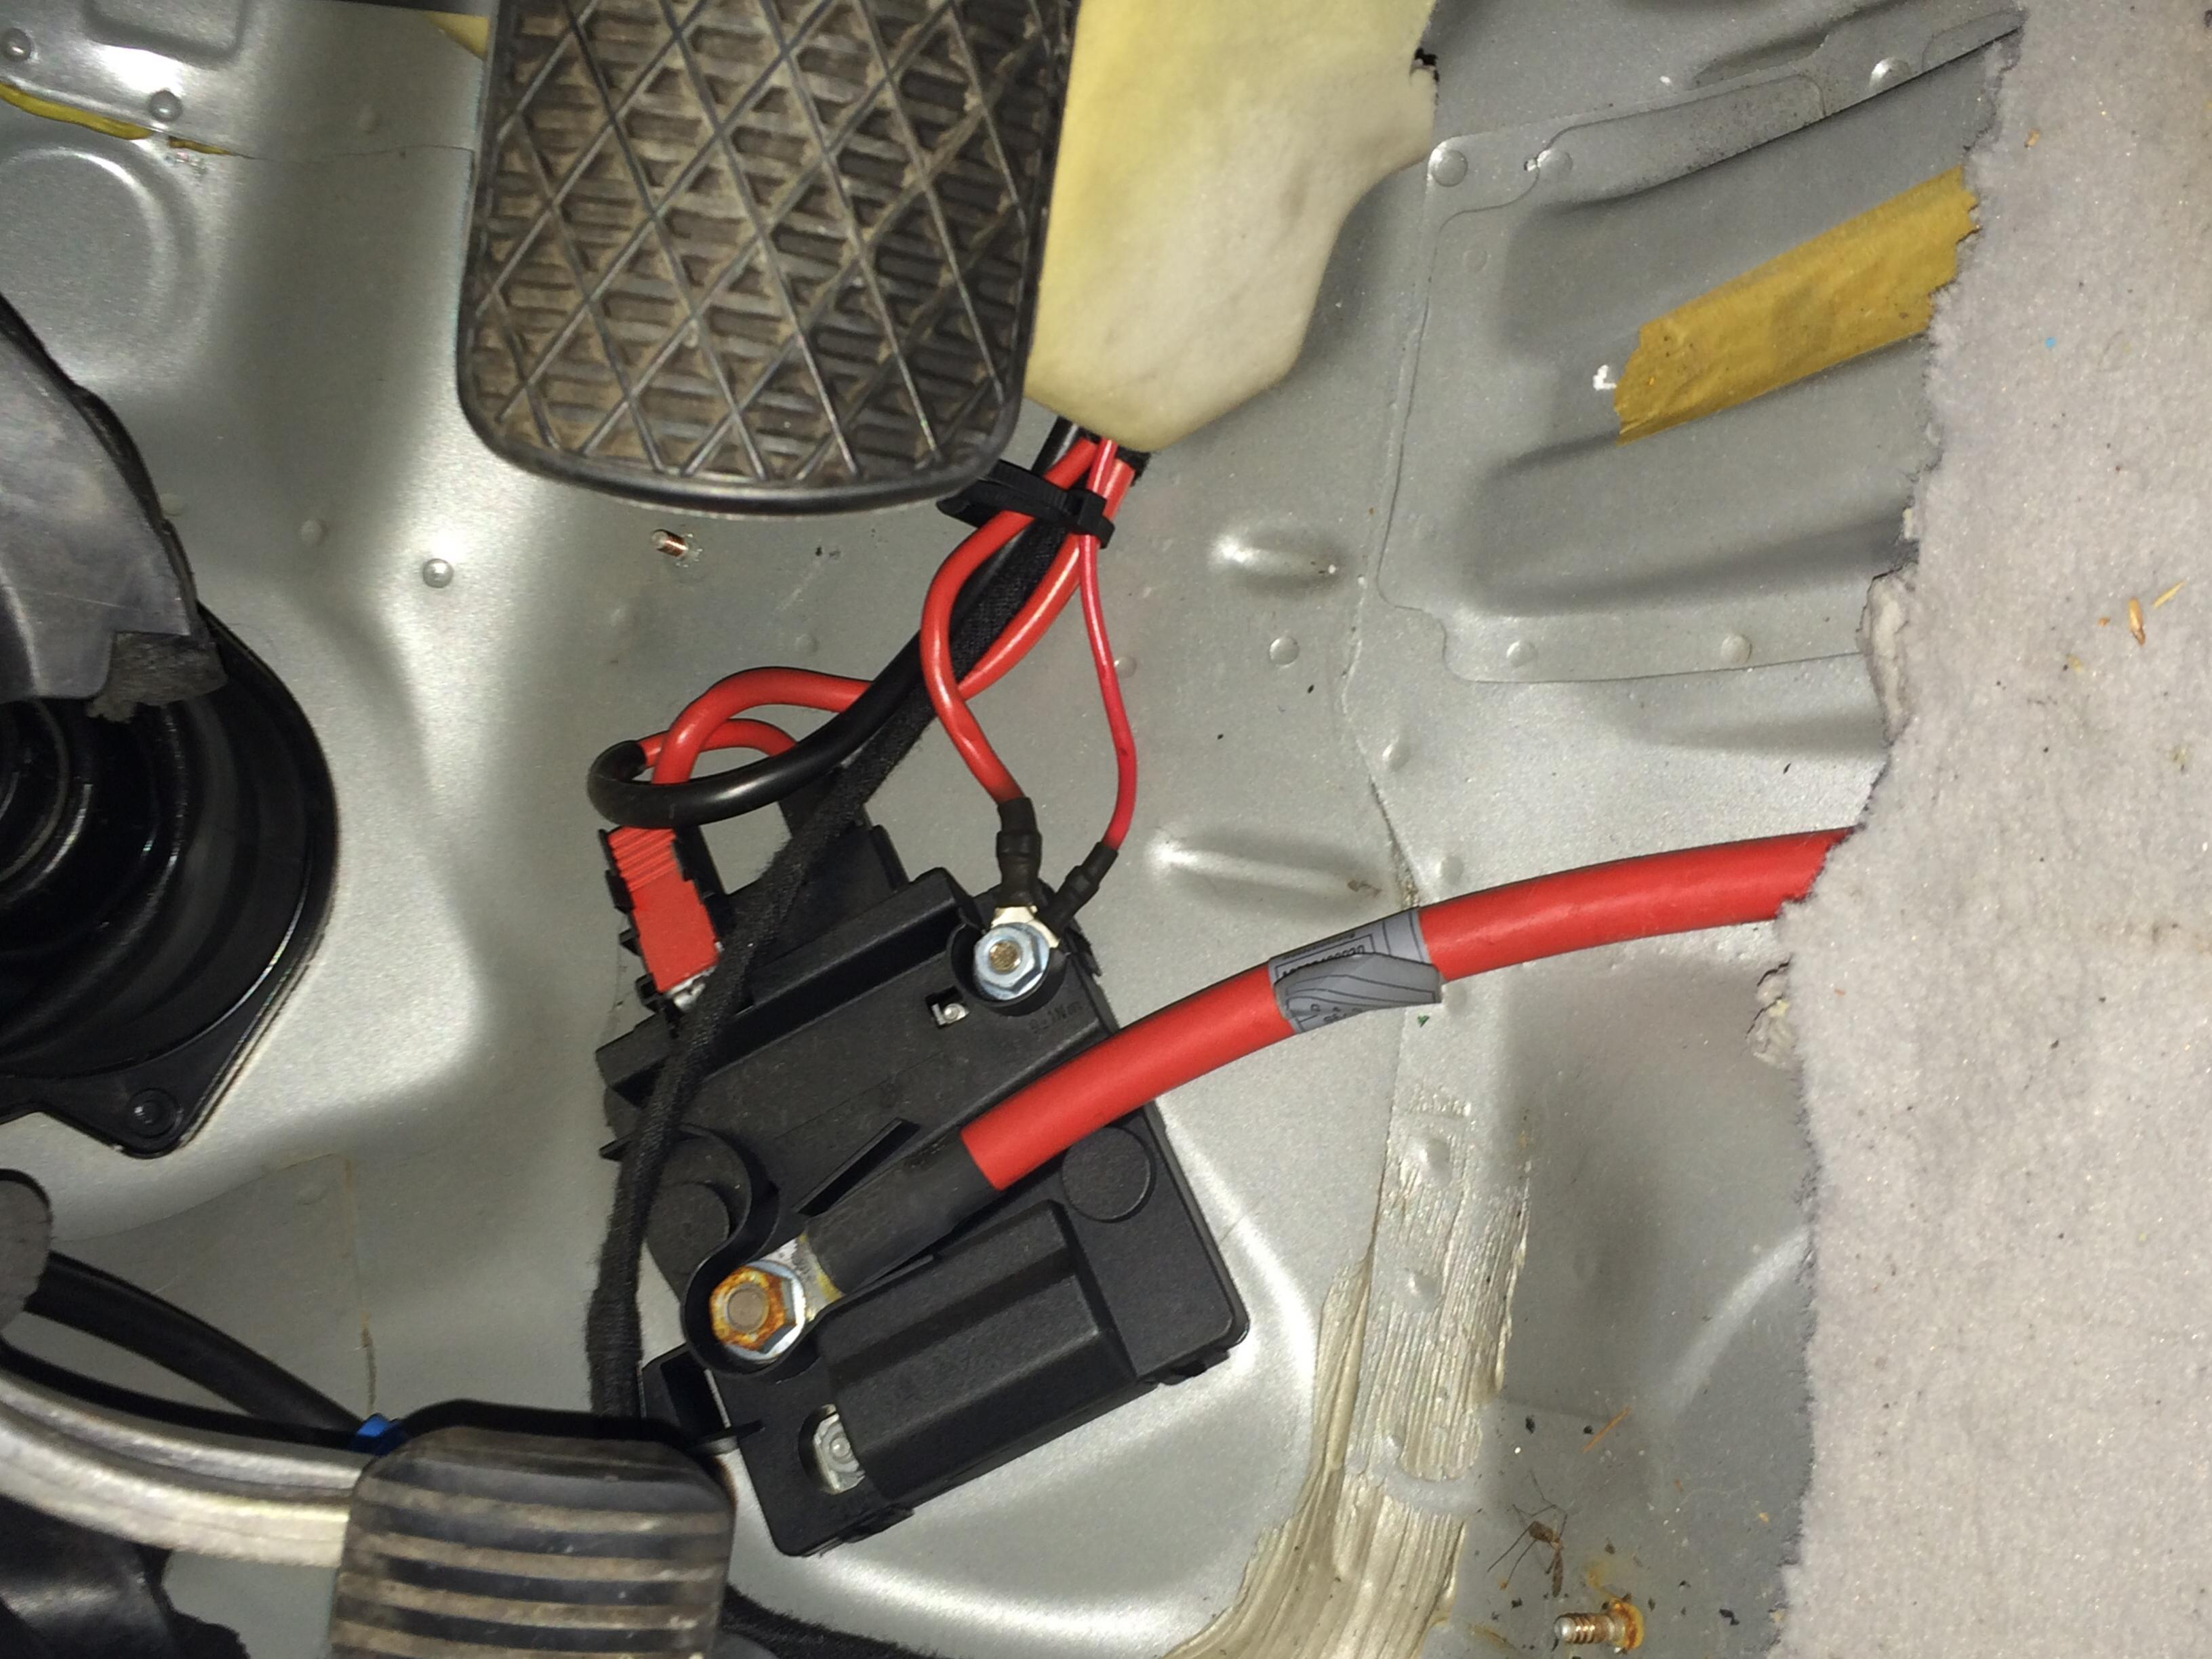 2006 Bmw X5 Fuse Box Location Passenger Footwell Dead Battery Mbworld Org Forums